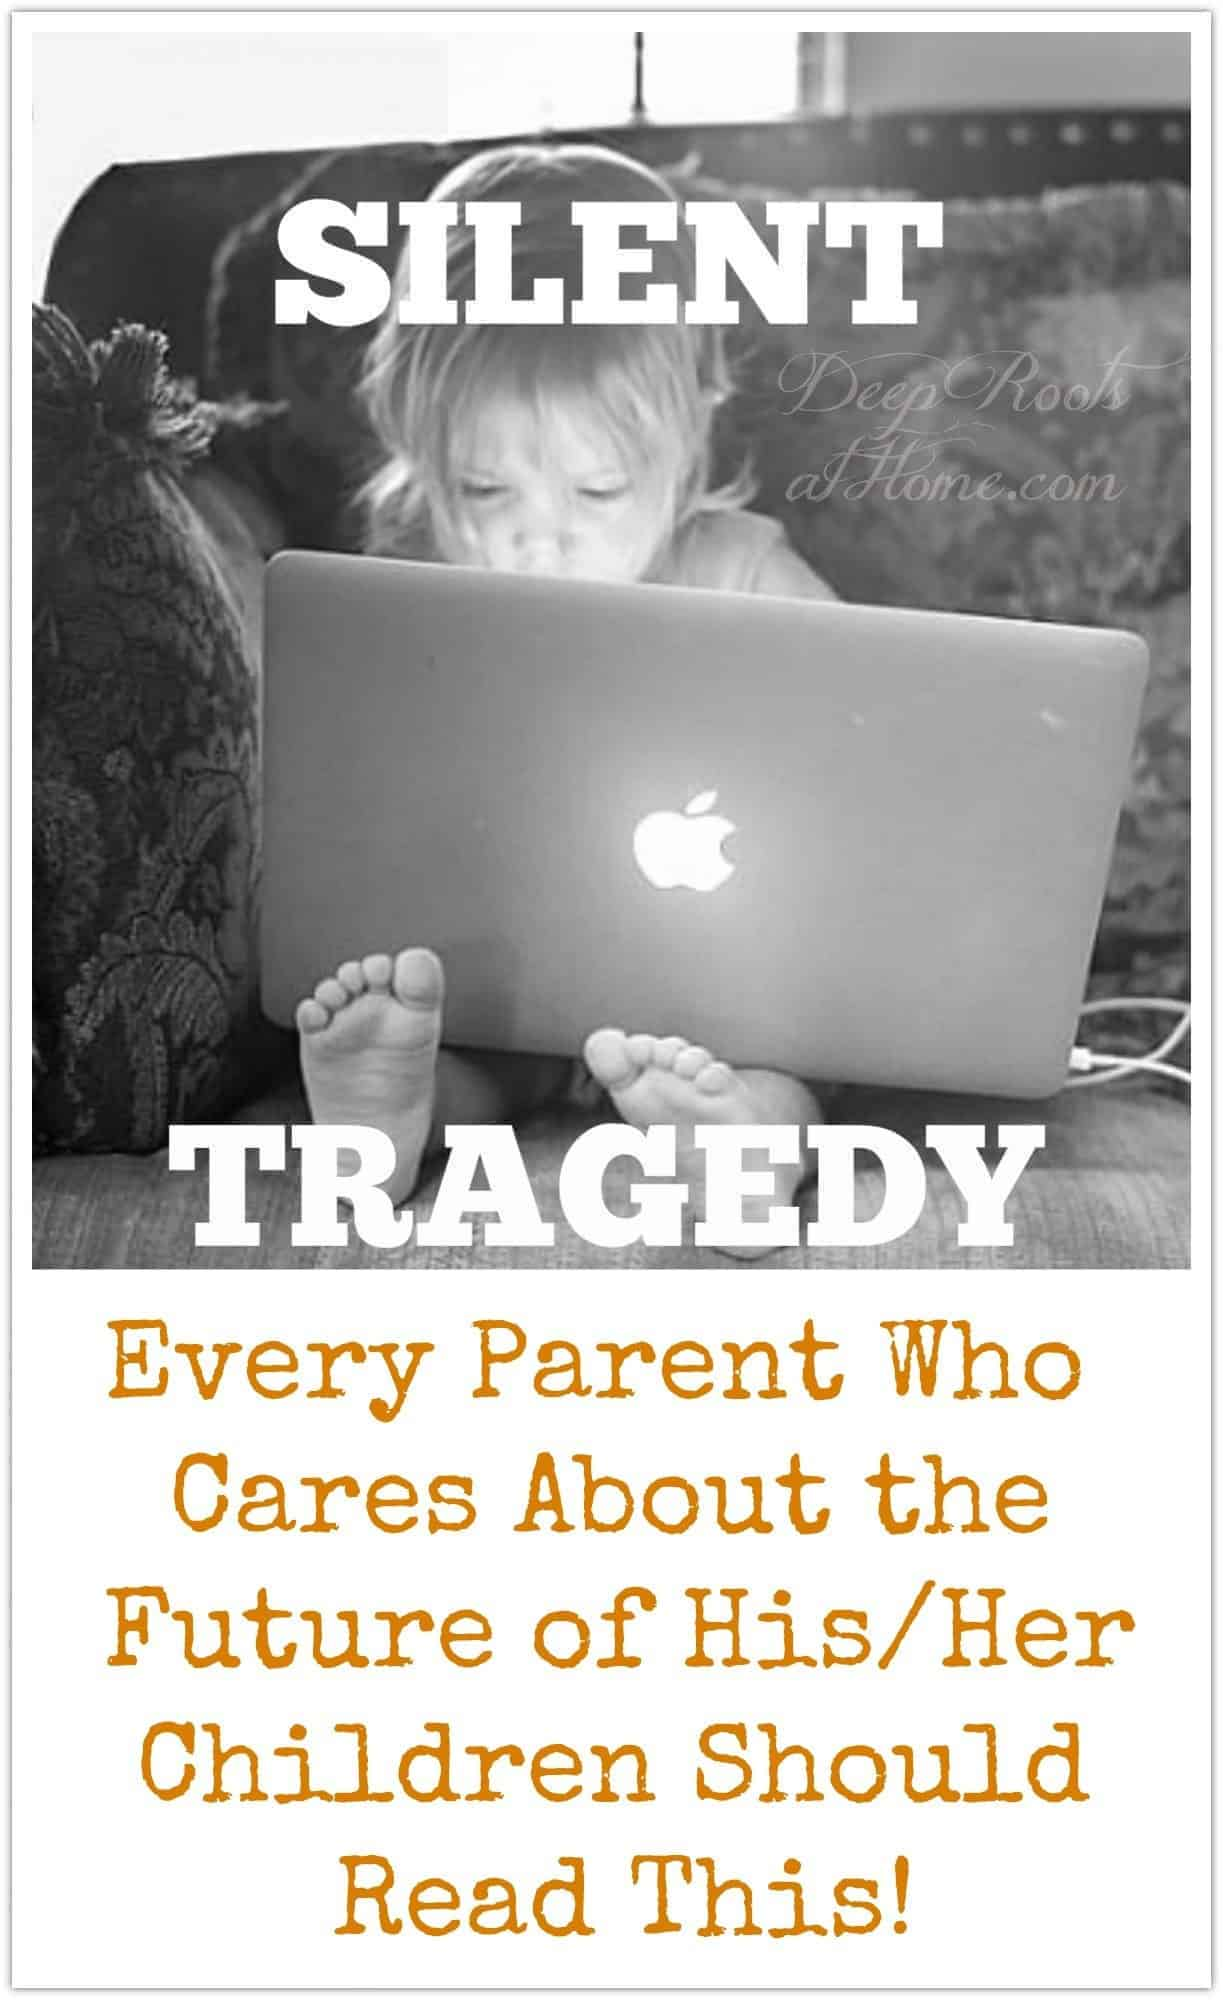 Child Harm, the Silent Tragedy: Every Parent who Cares Should Read This. a child all alone engrossed in a laptop with a glowing Apple logo